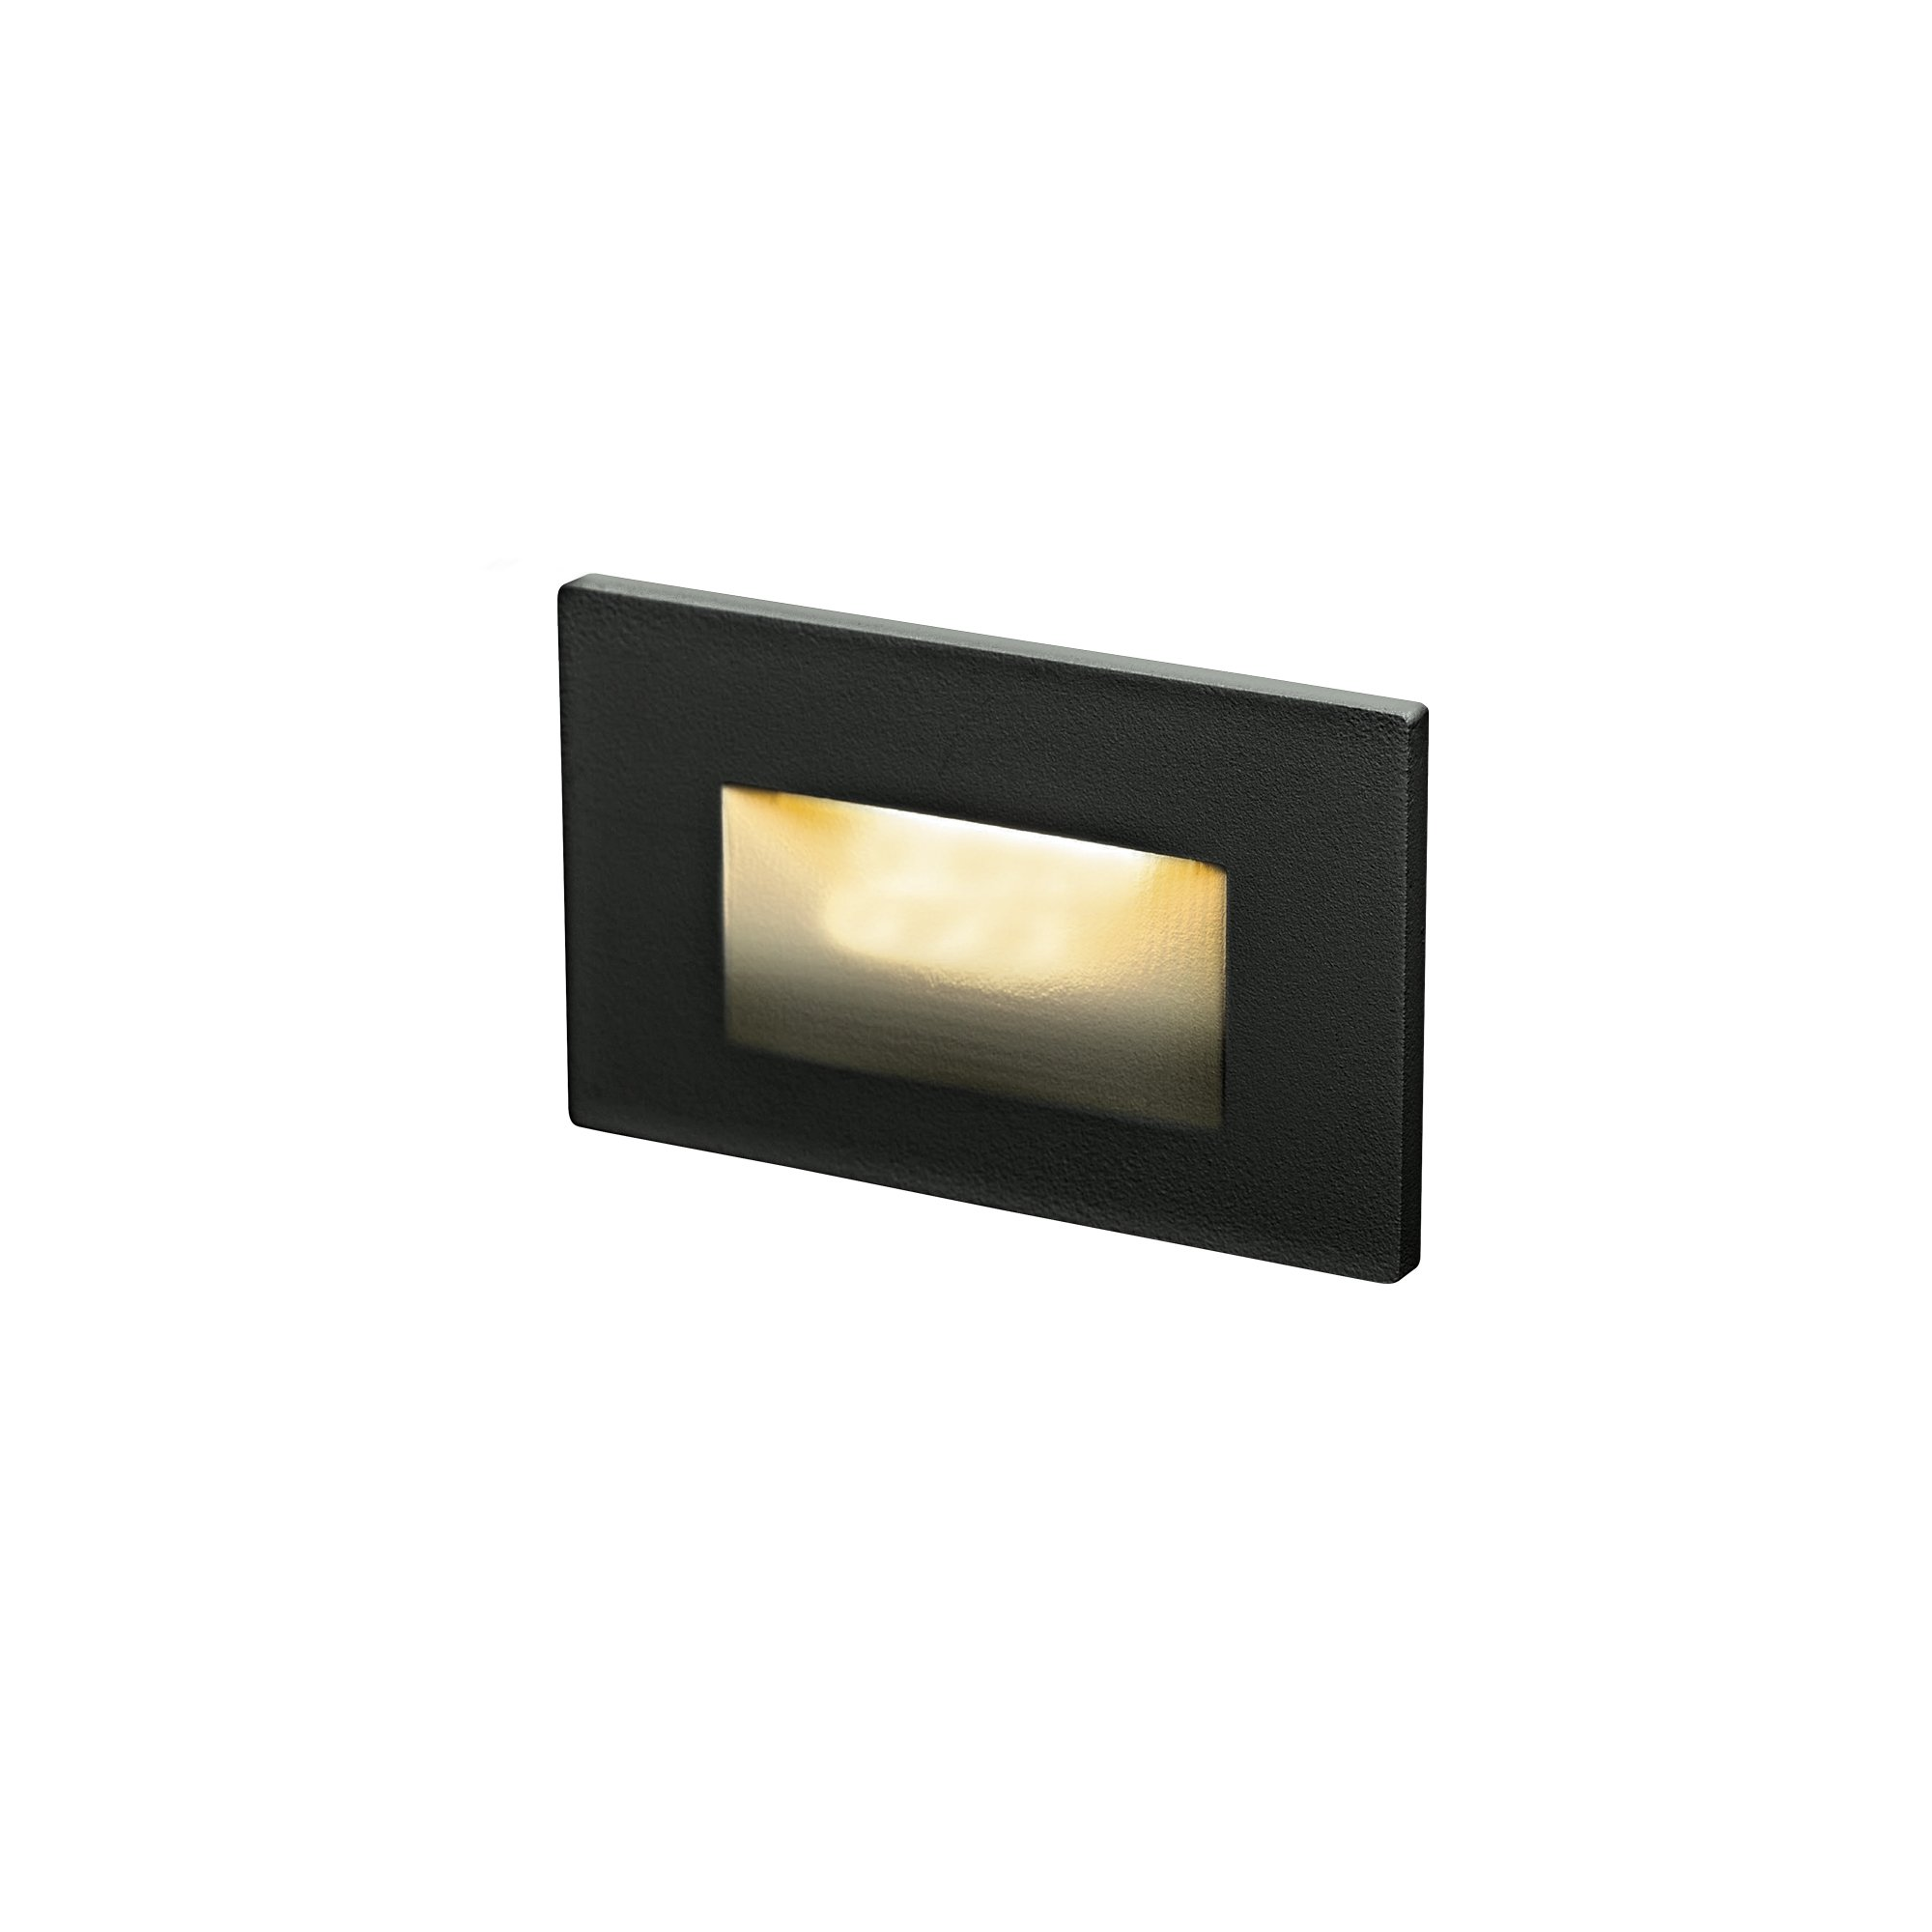 DALS Lighting LEDSTEP005D-BK 4.75'' Recessed Horizontal Indoor/Outdoor LED Step Light, Black